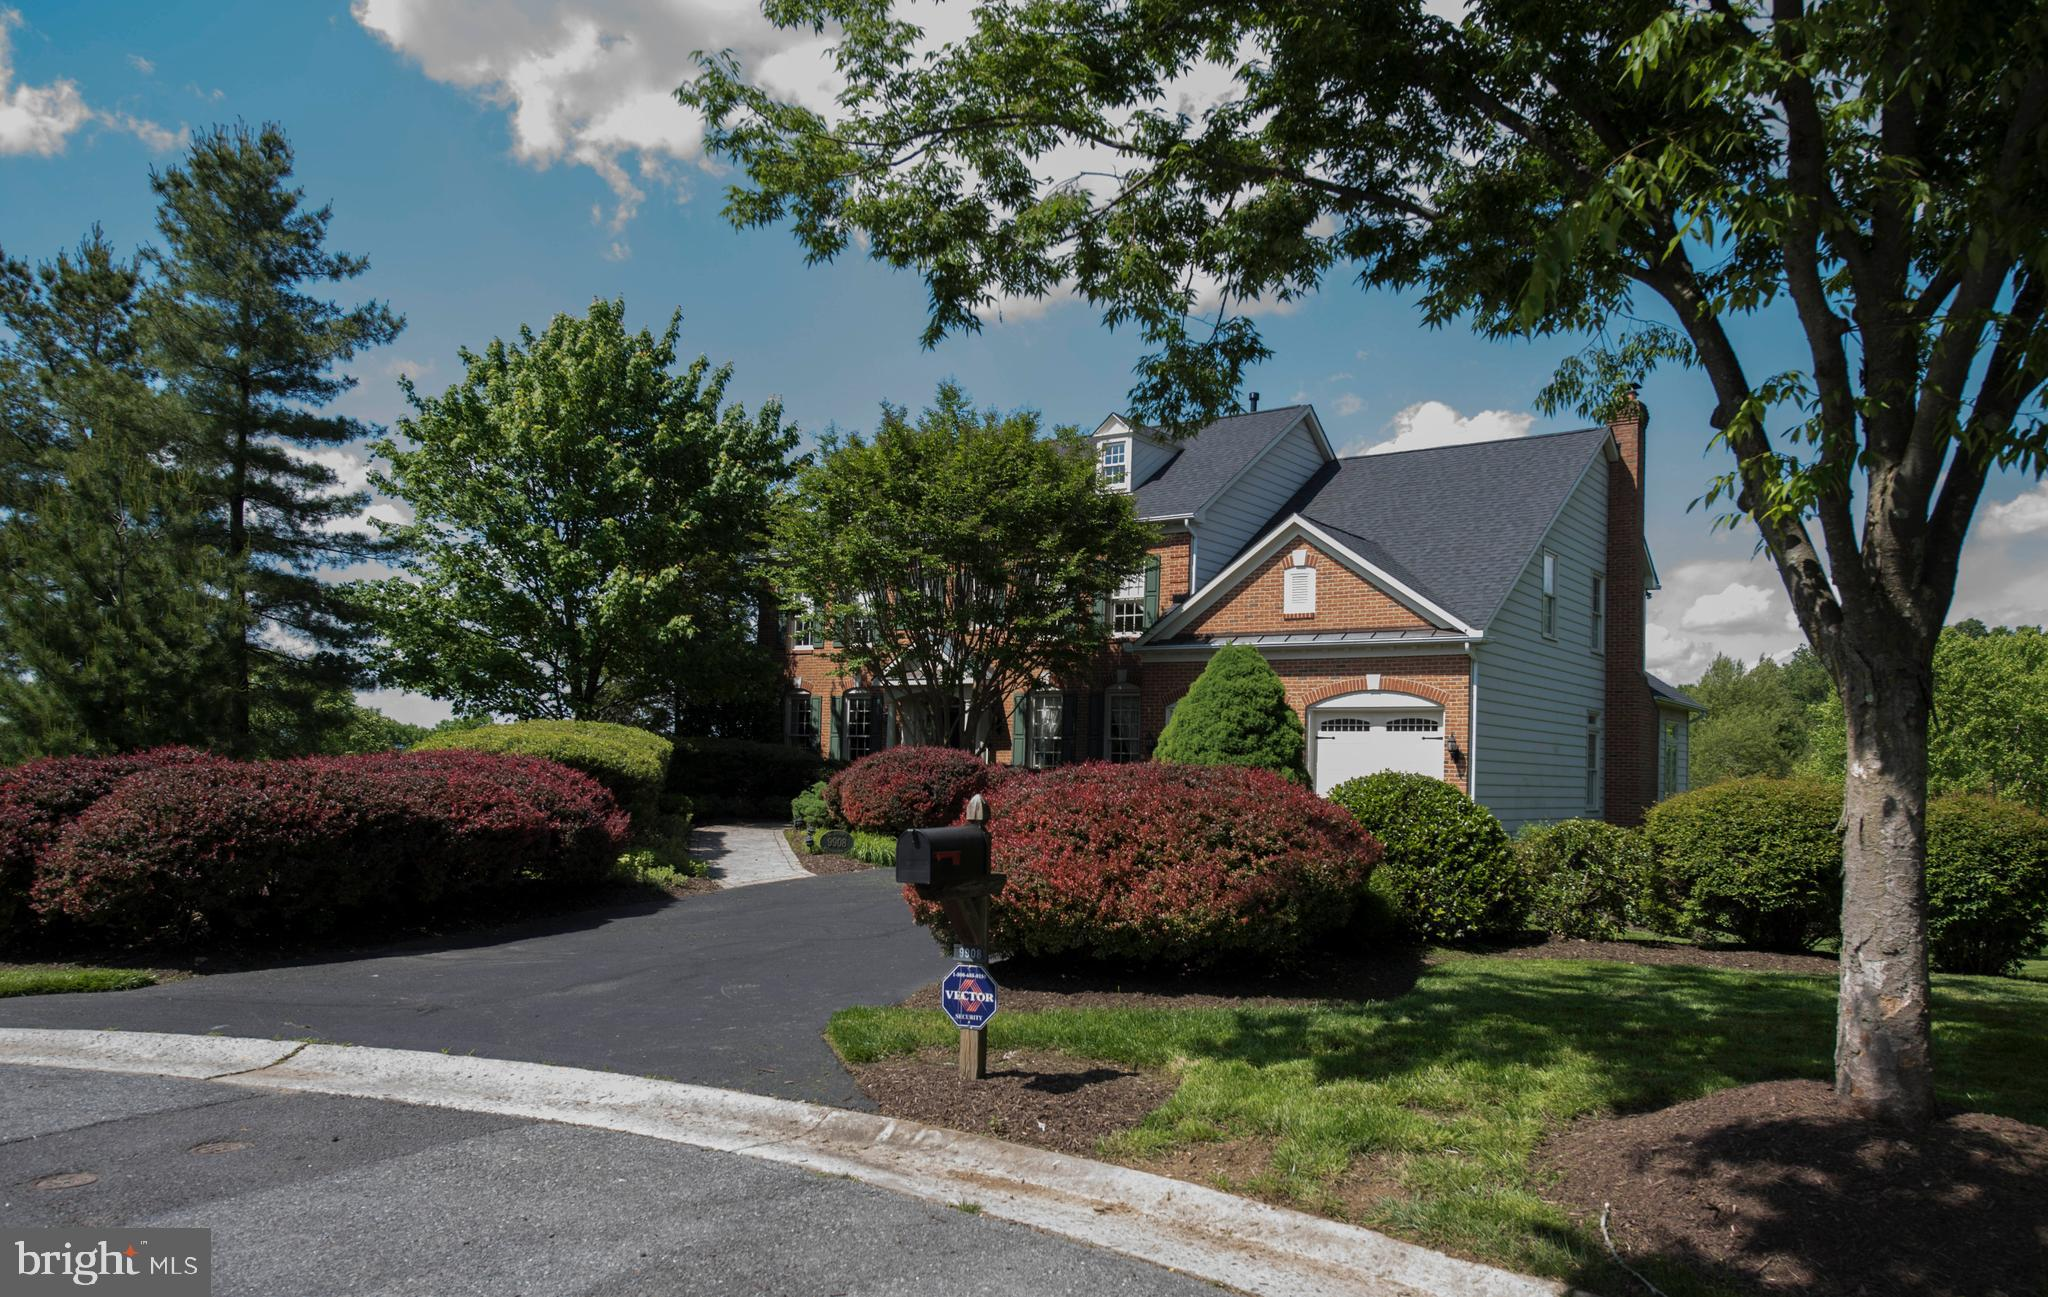 9908 WENTWORTH PLACE, IJAMSVILLE, MD 21754